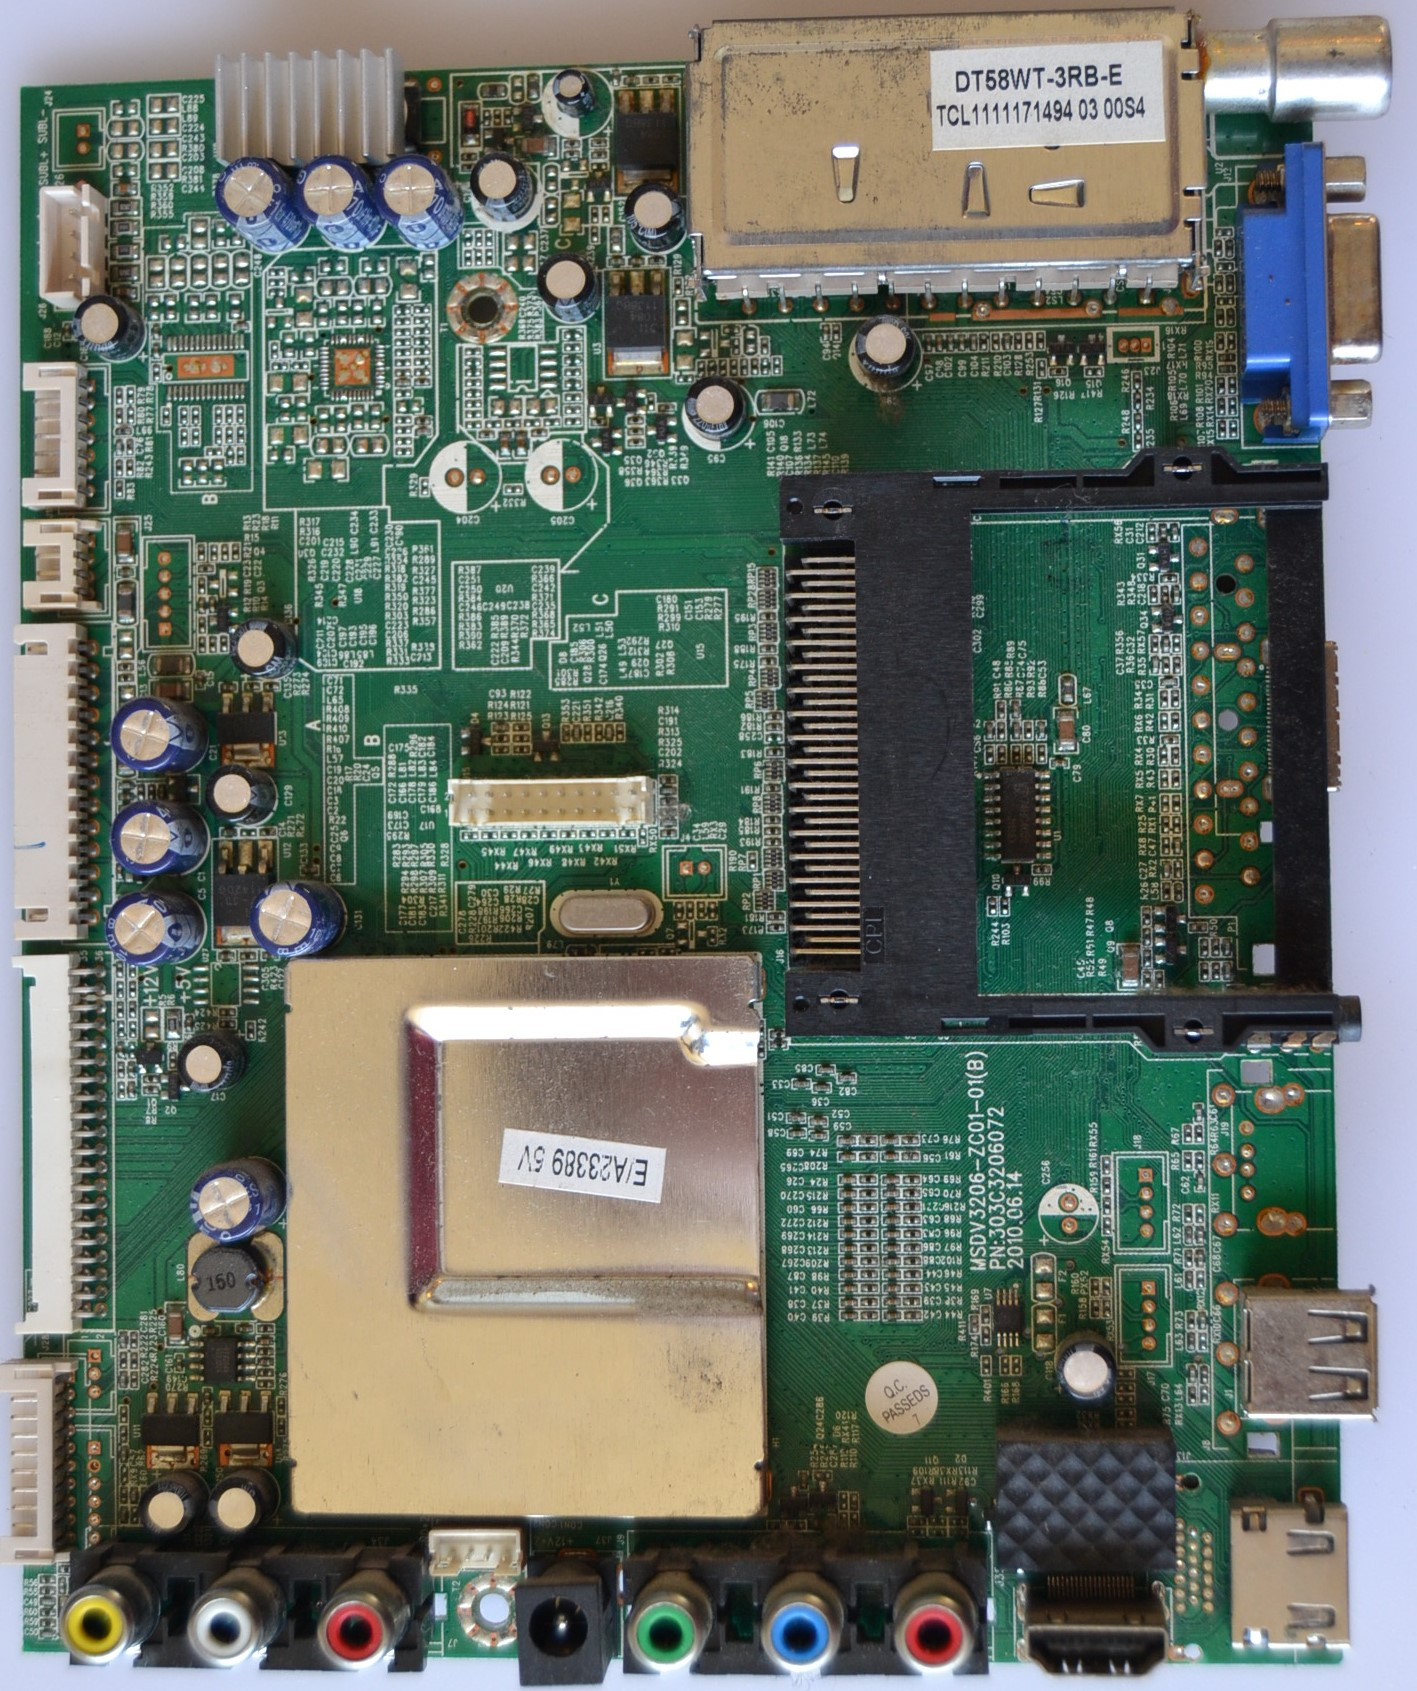 MB/MSDV3206-ZC01-01/HAIER MAIN BOARD ,MSDV3206-ZC01-01,PN:303C3206072, for ,HAIER LET22C430